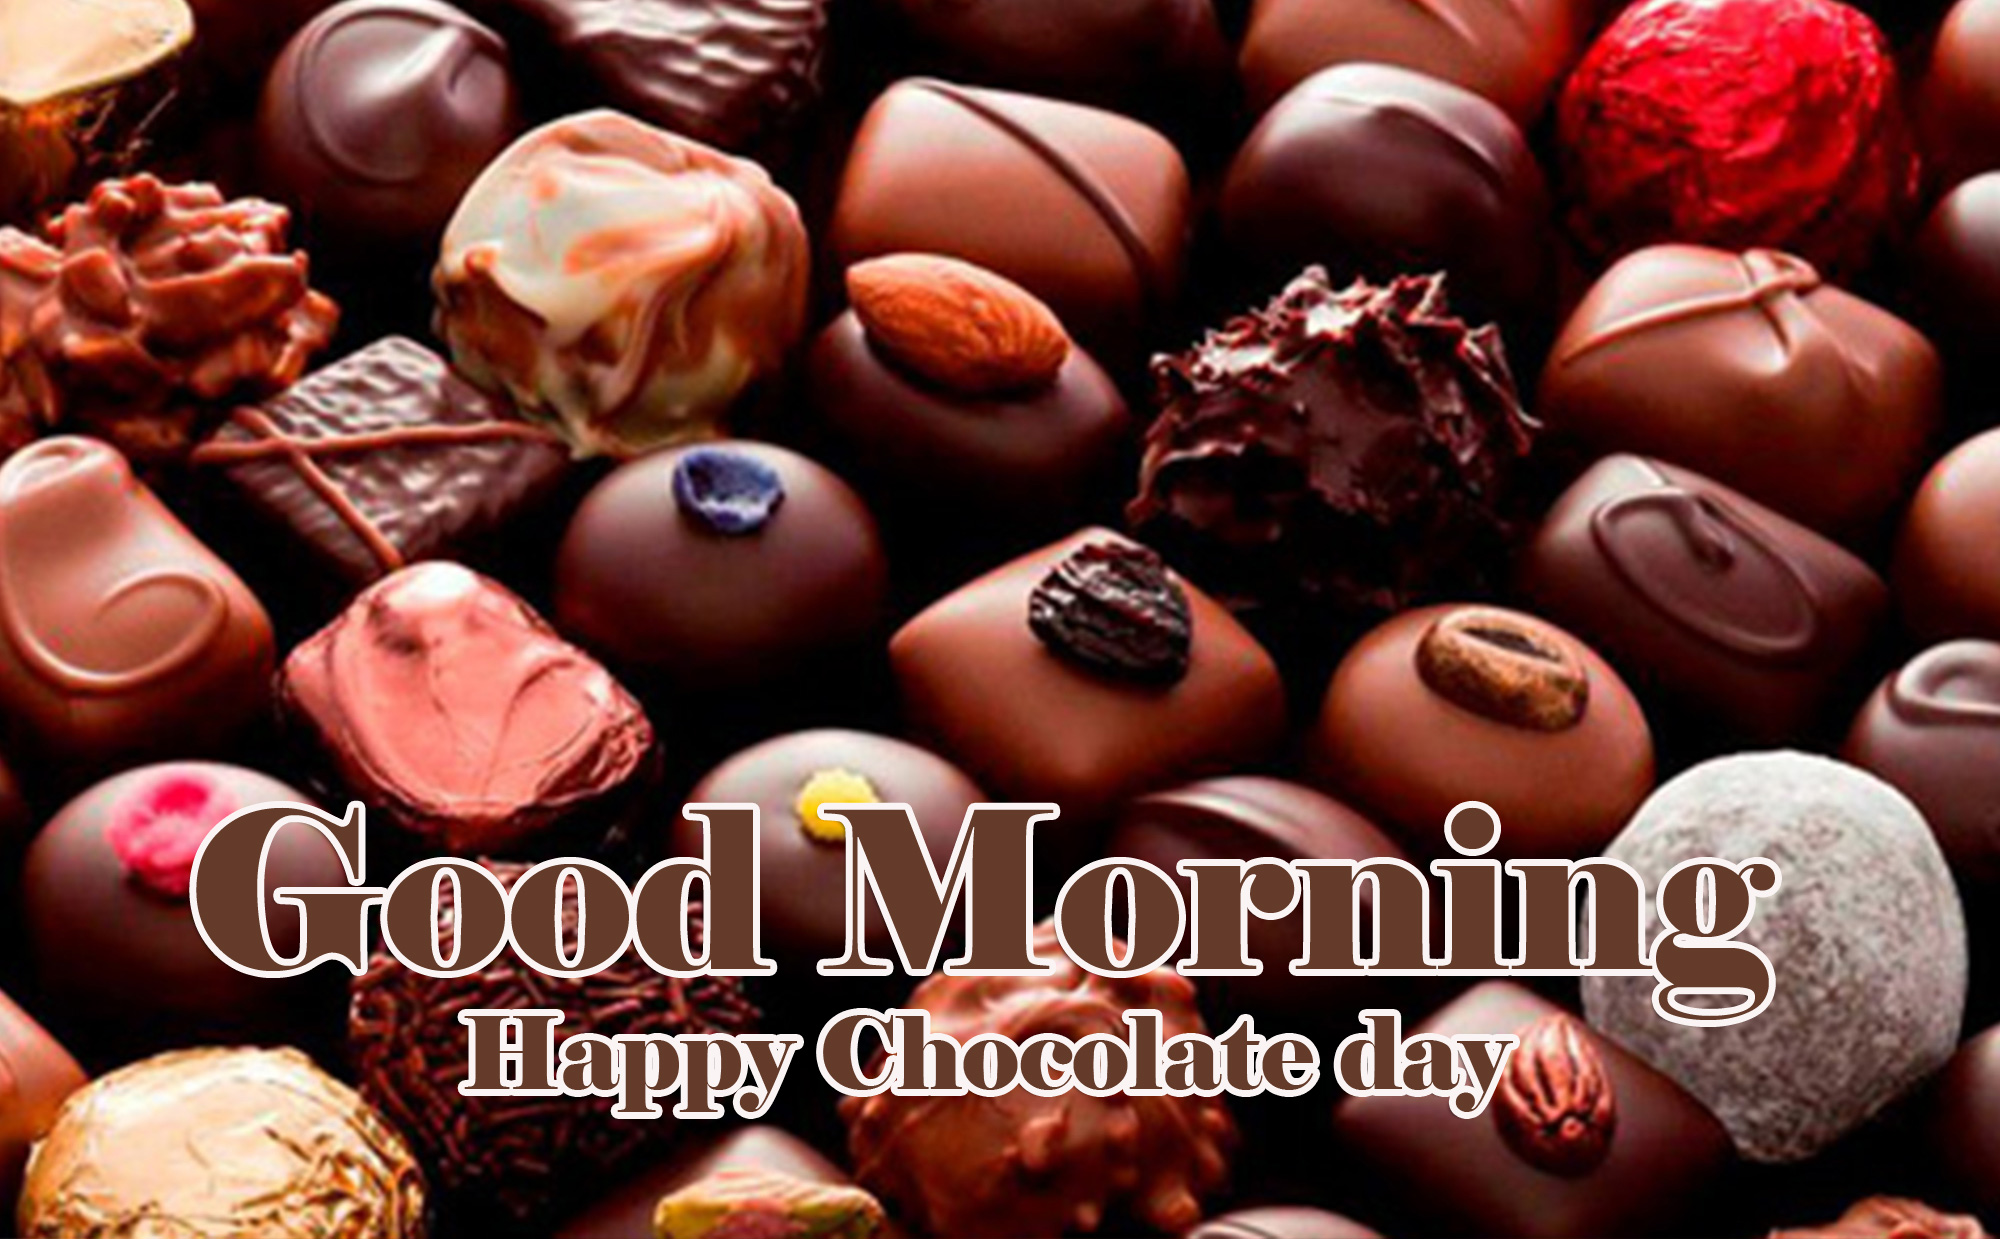 Happy Chocolate Day Good Morning Images Wallpaper free Download Free